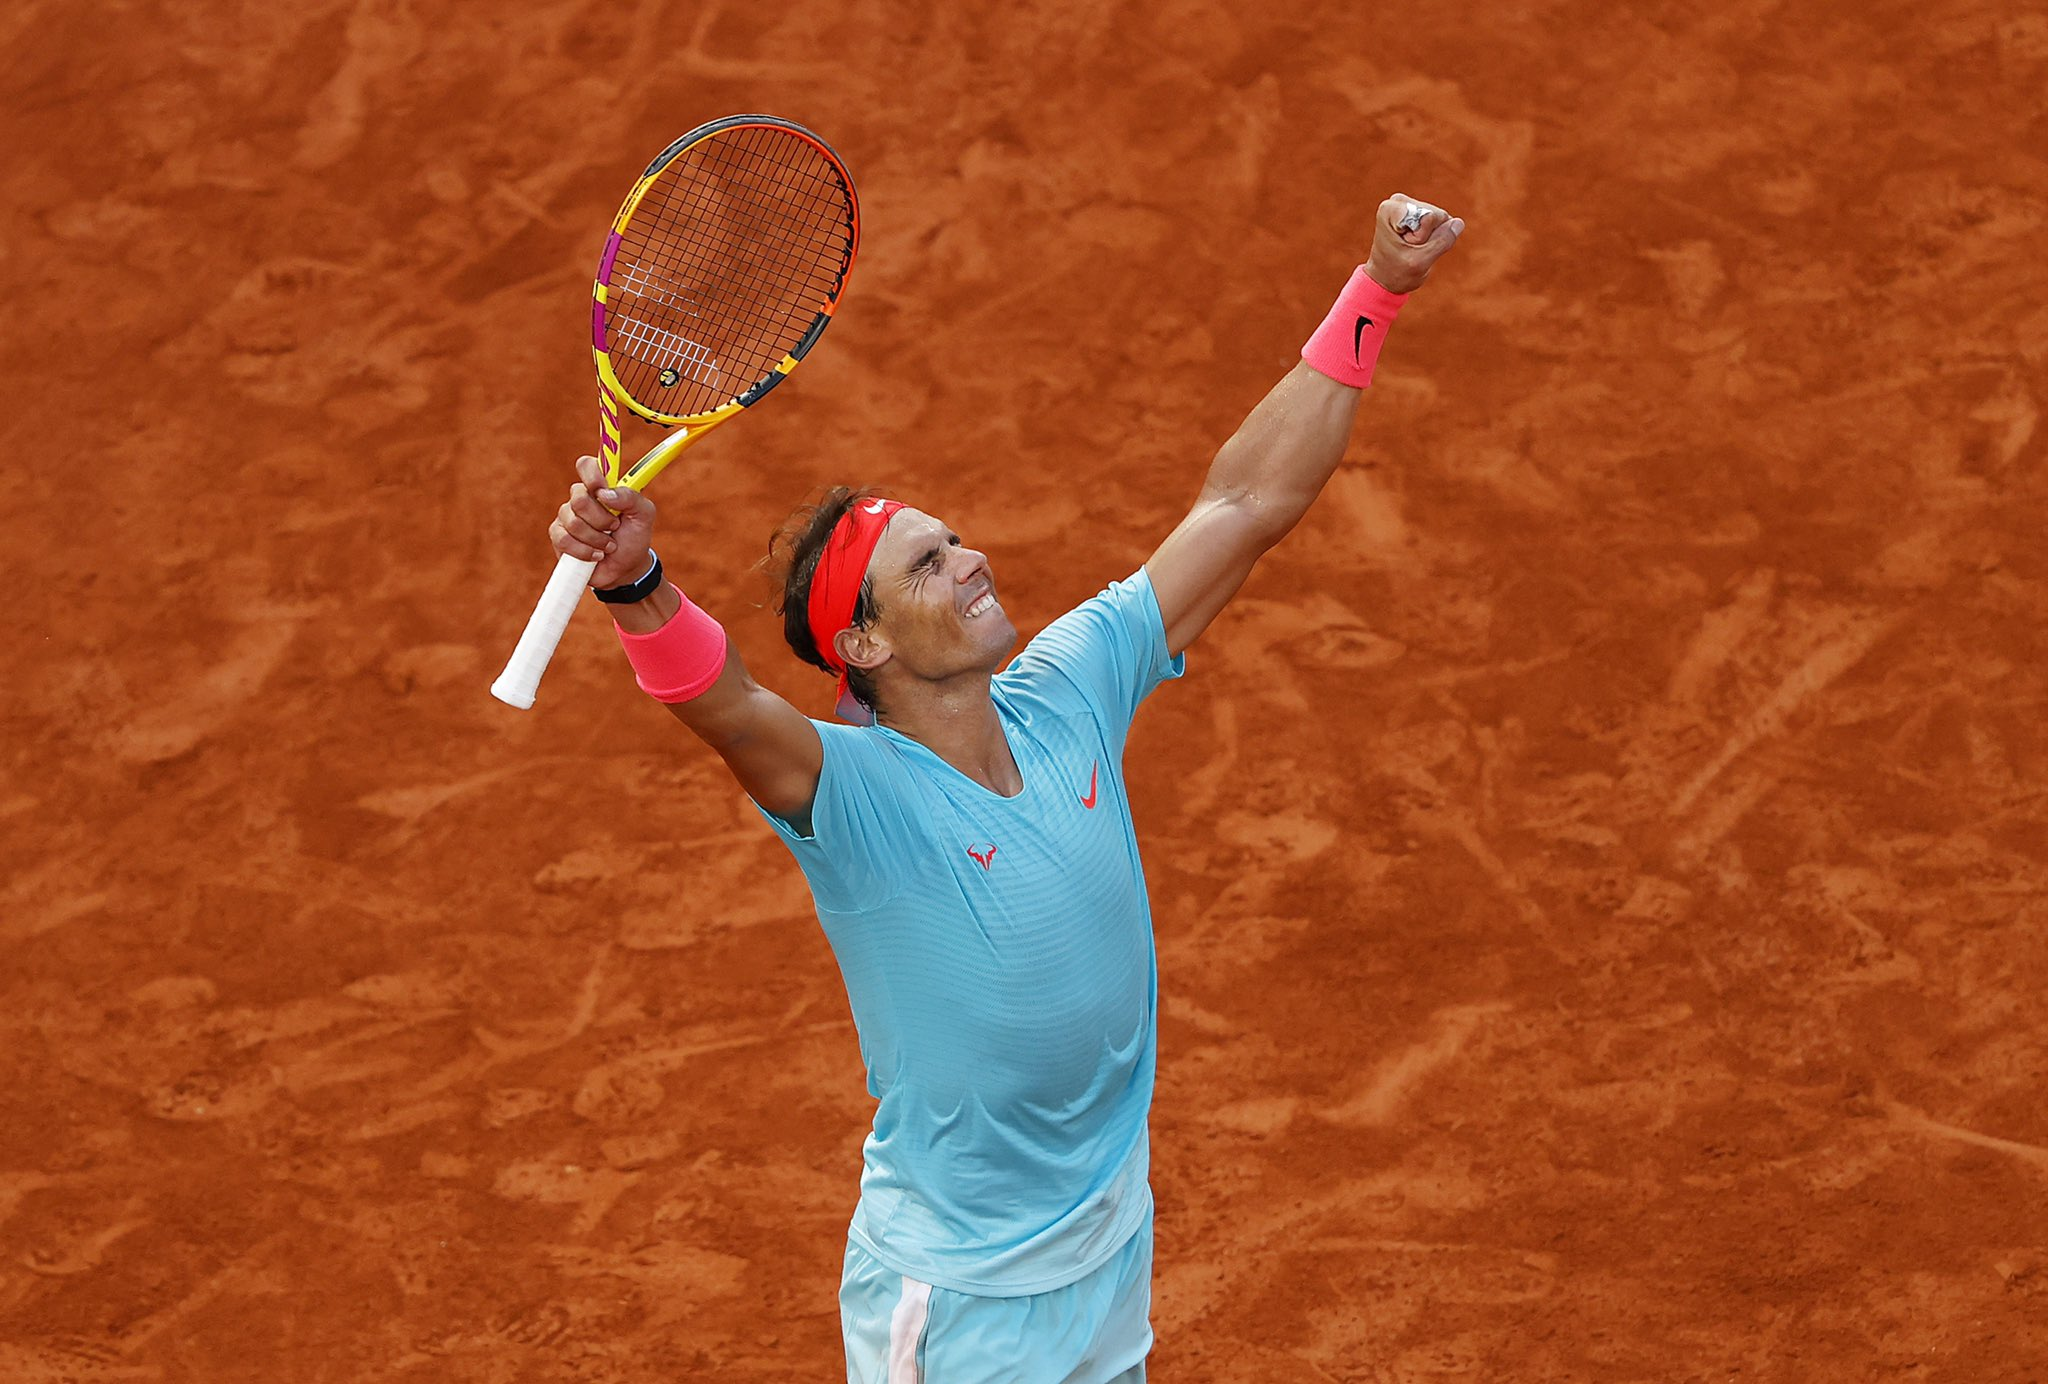 Nadal Outclasses Djokovic In French Open Final, Equals Federer's Grand Slams Wins